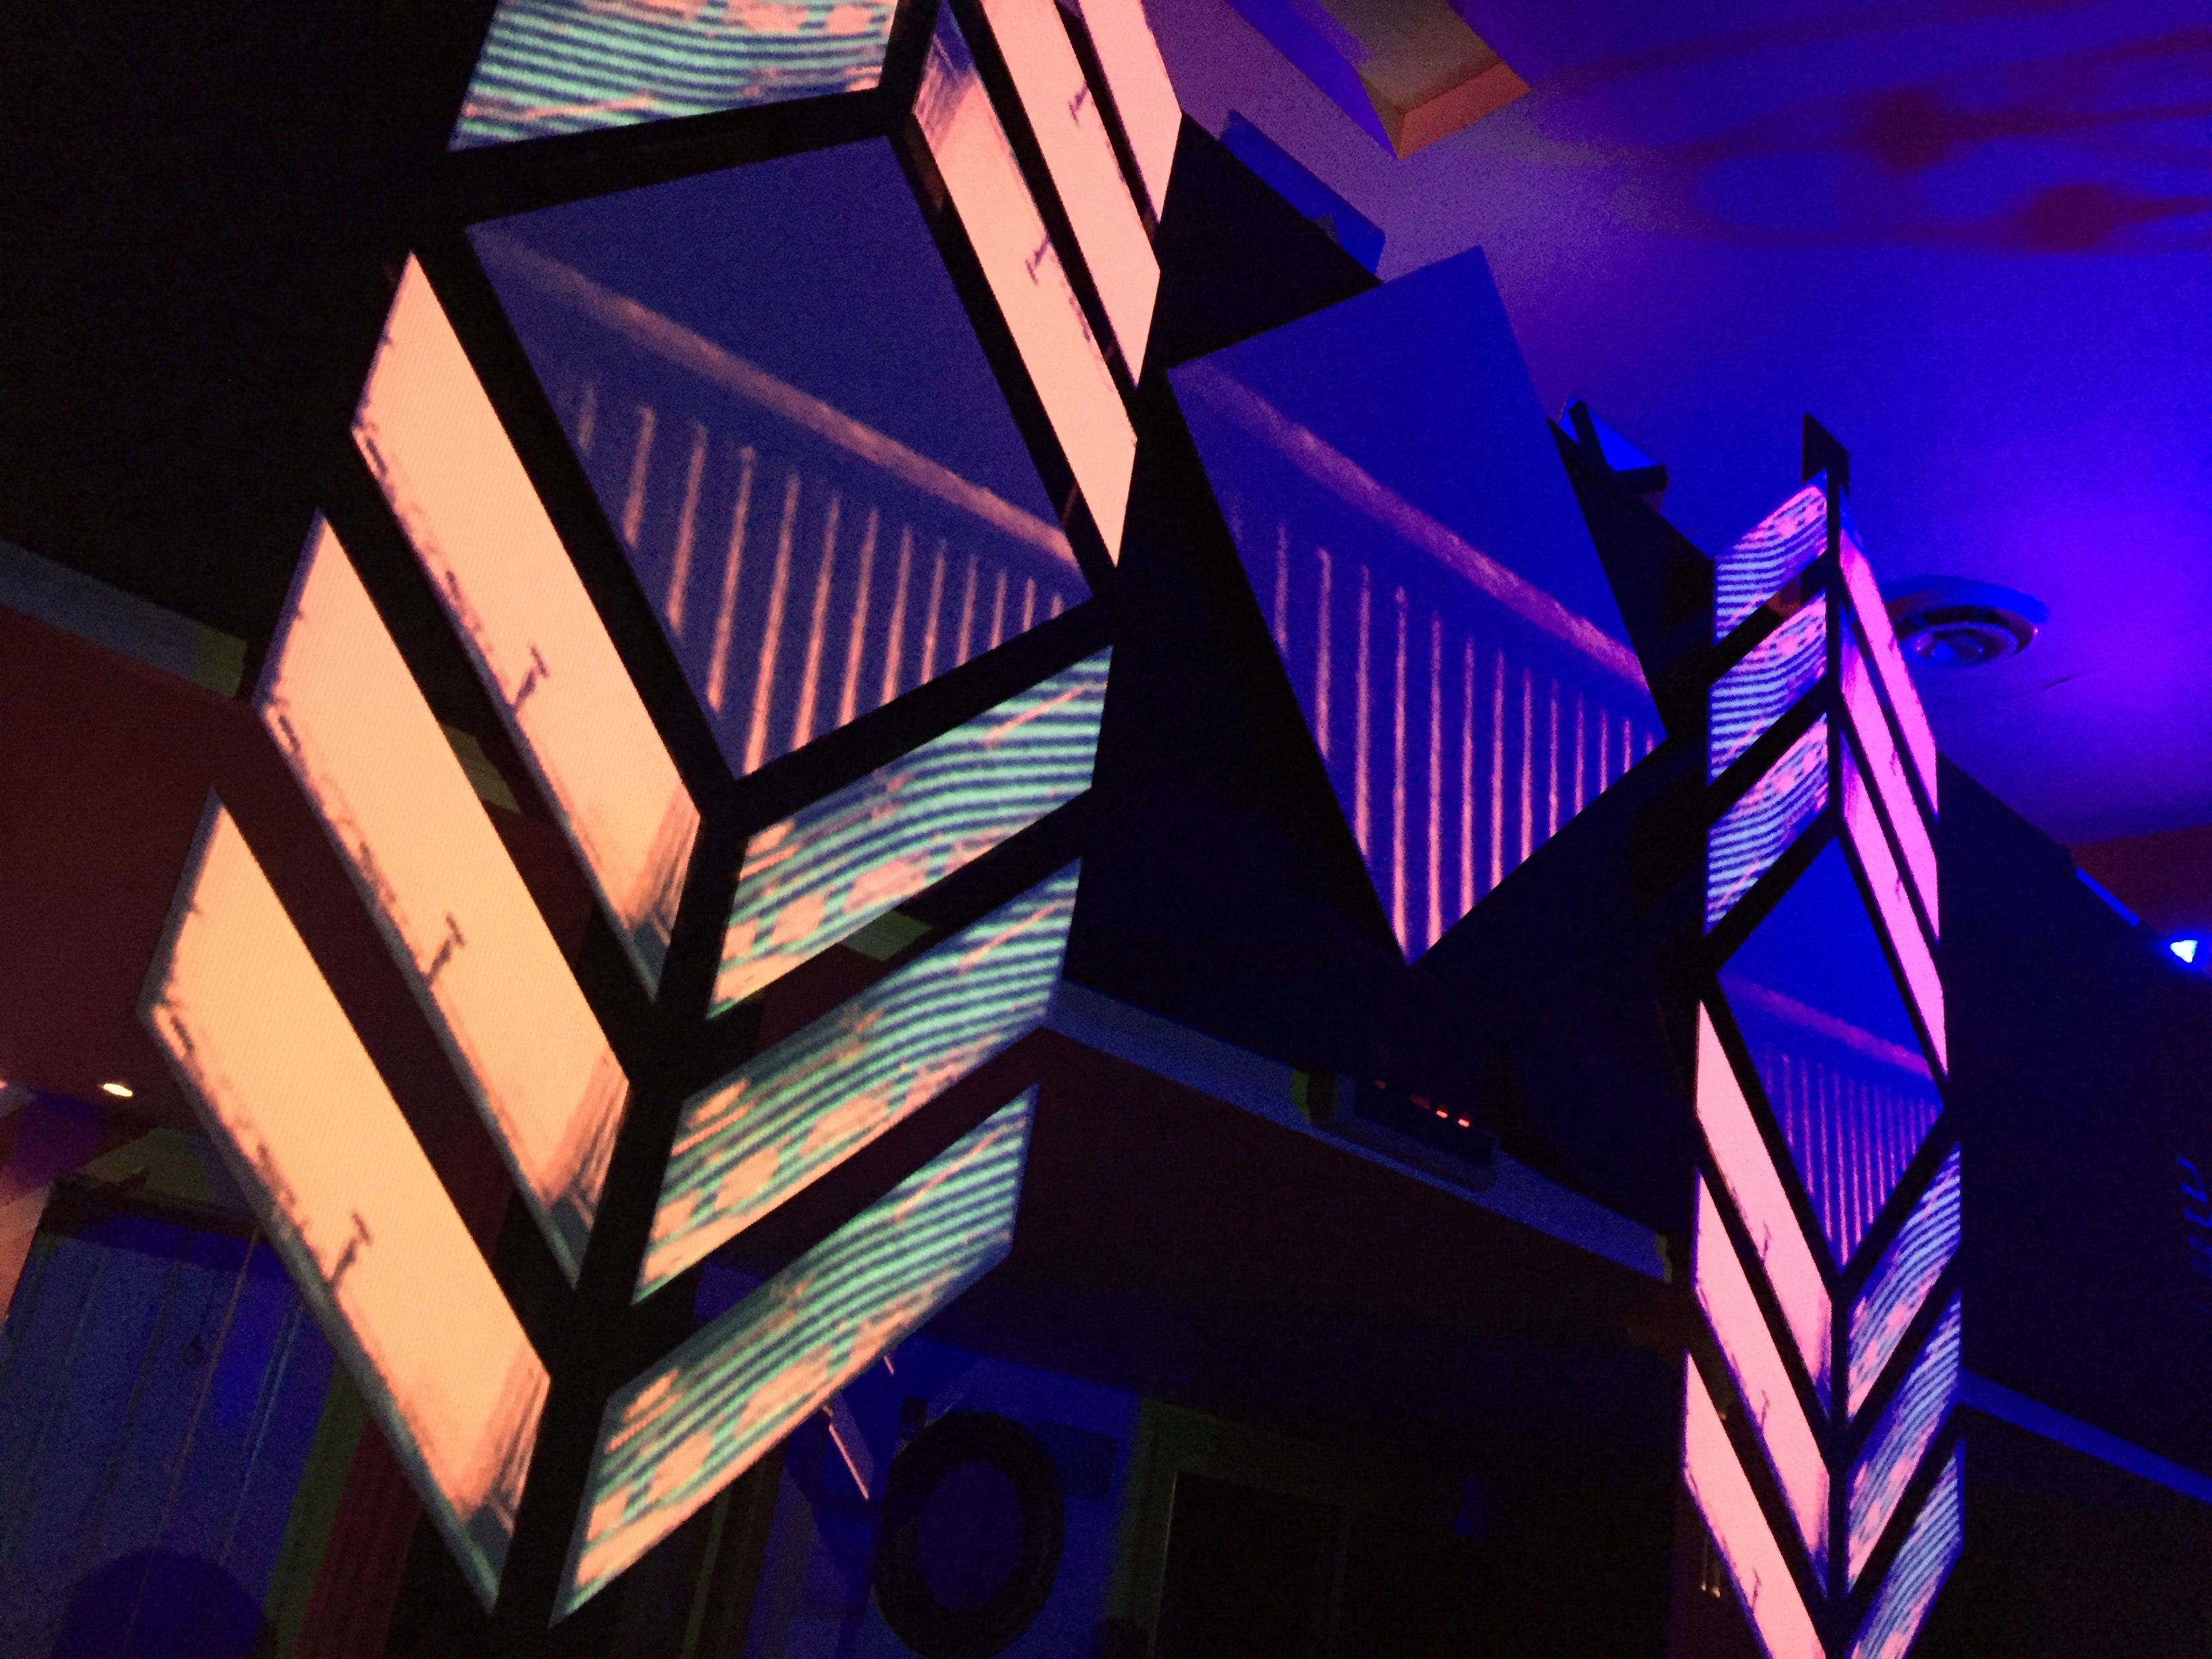 Geometric shapes including triangles placed on top of each other and lit up in yellows and purples